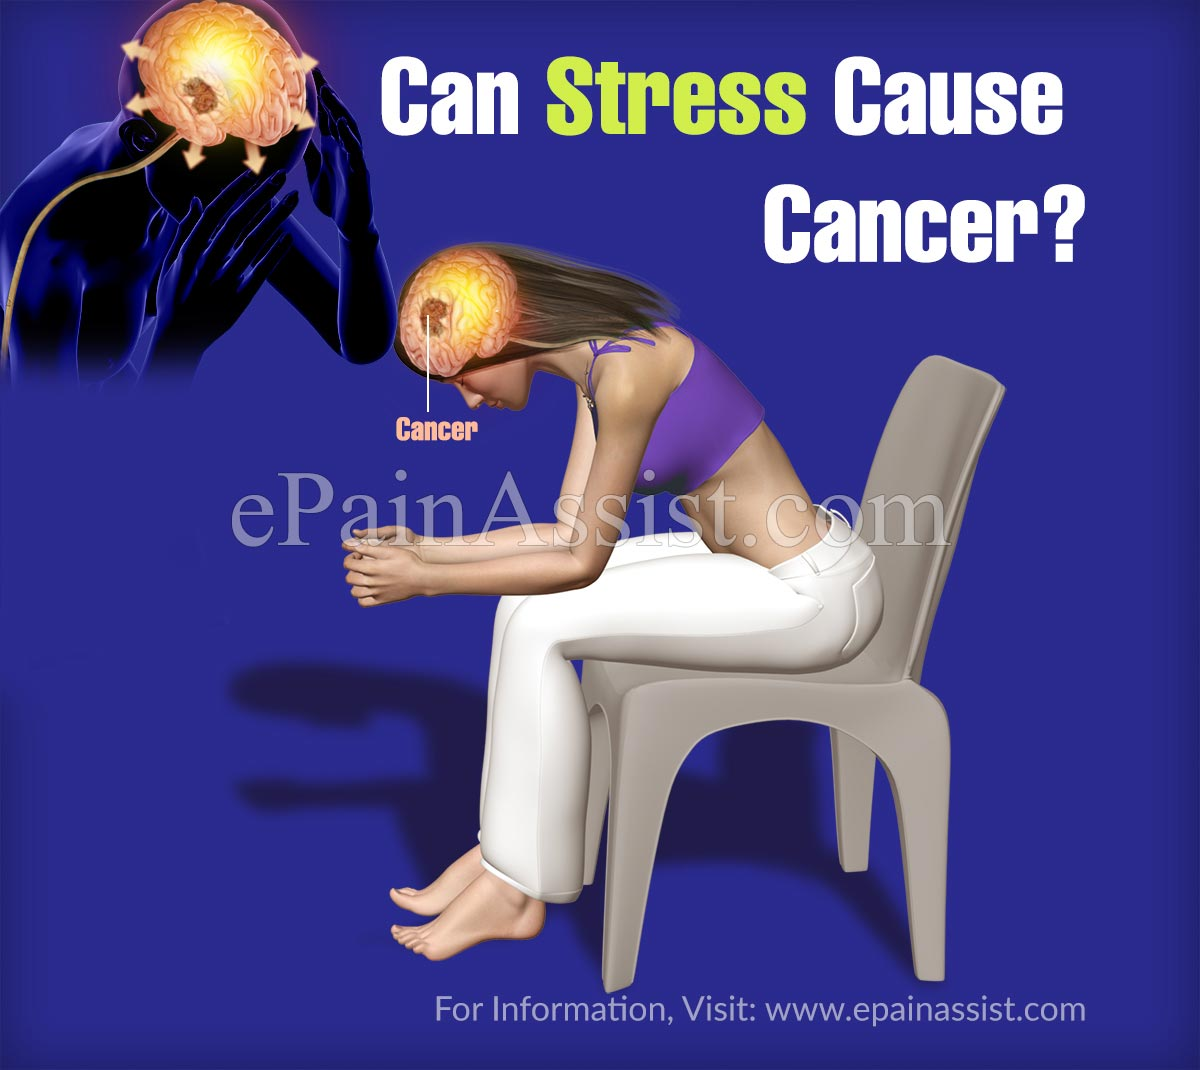 Can Stress Cause Cancer?